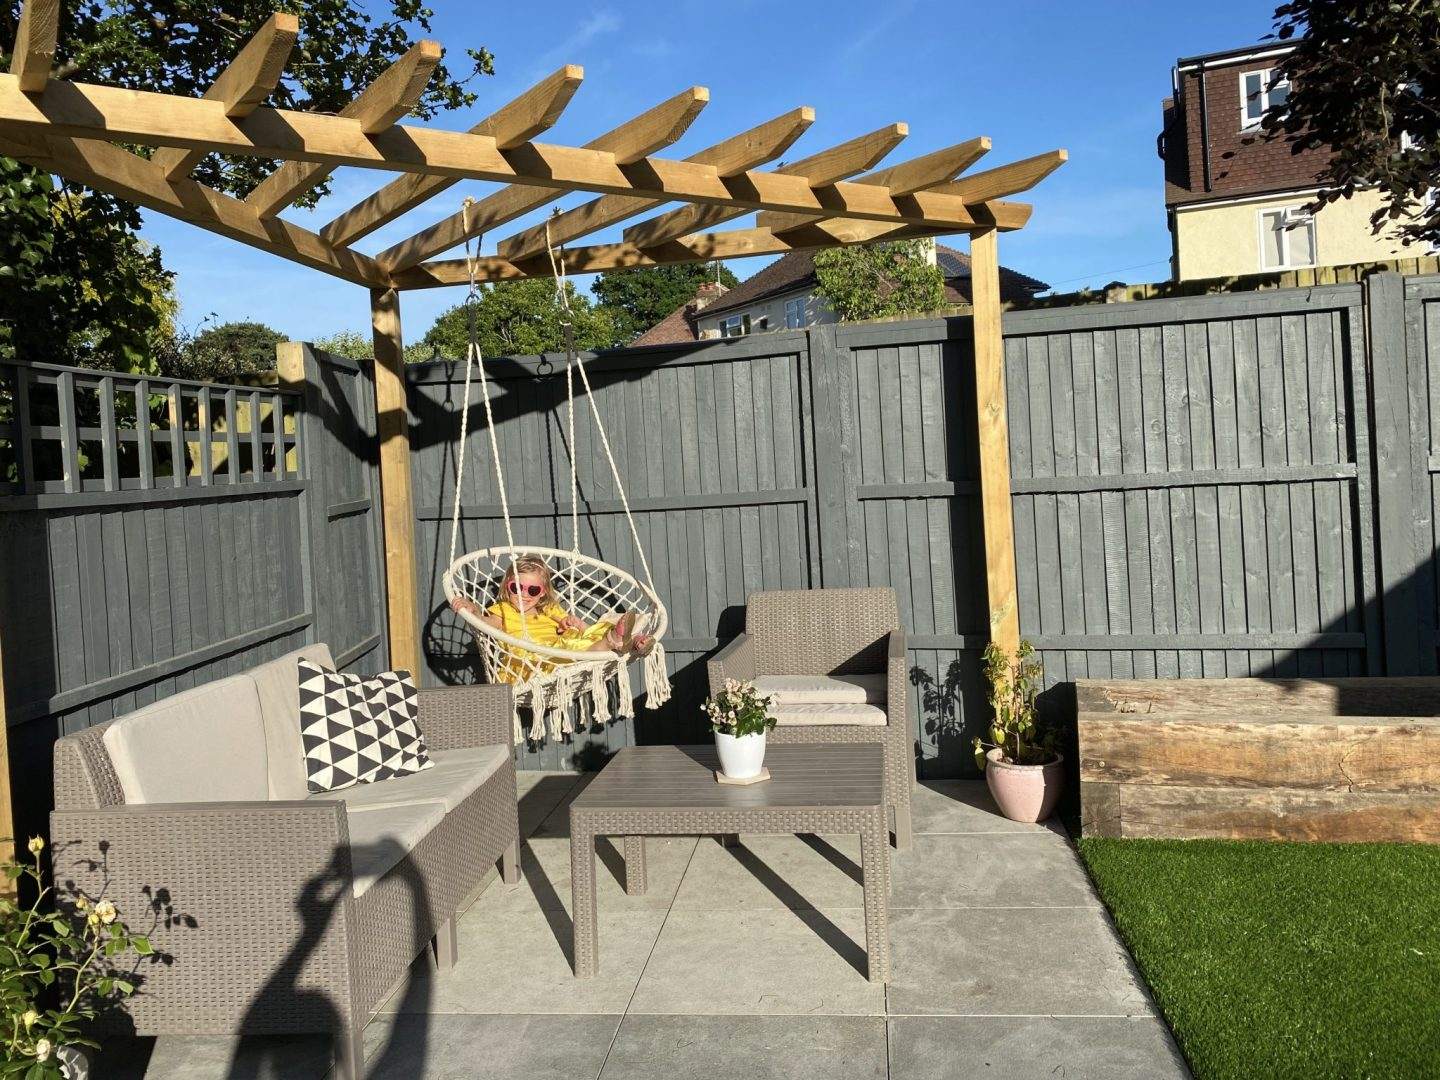 hanging chair in patio area with pergola and grey fence